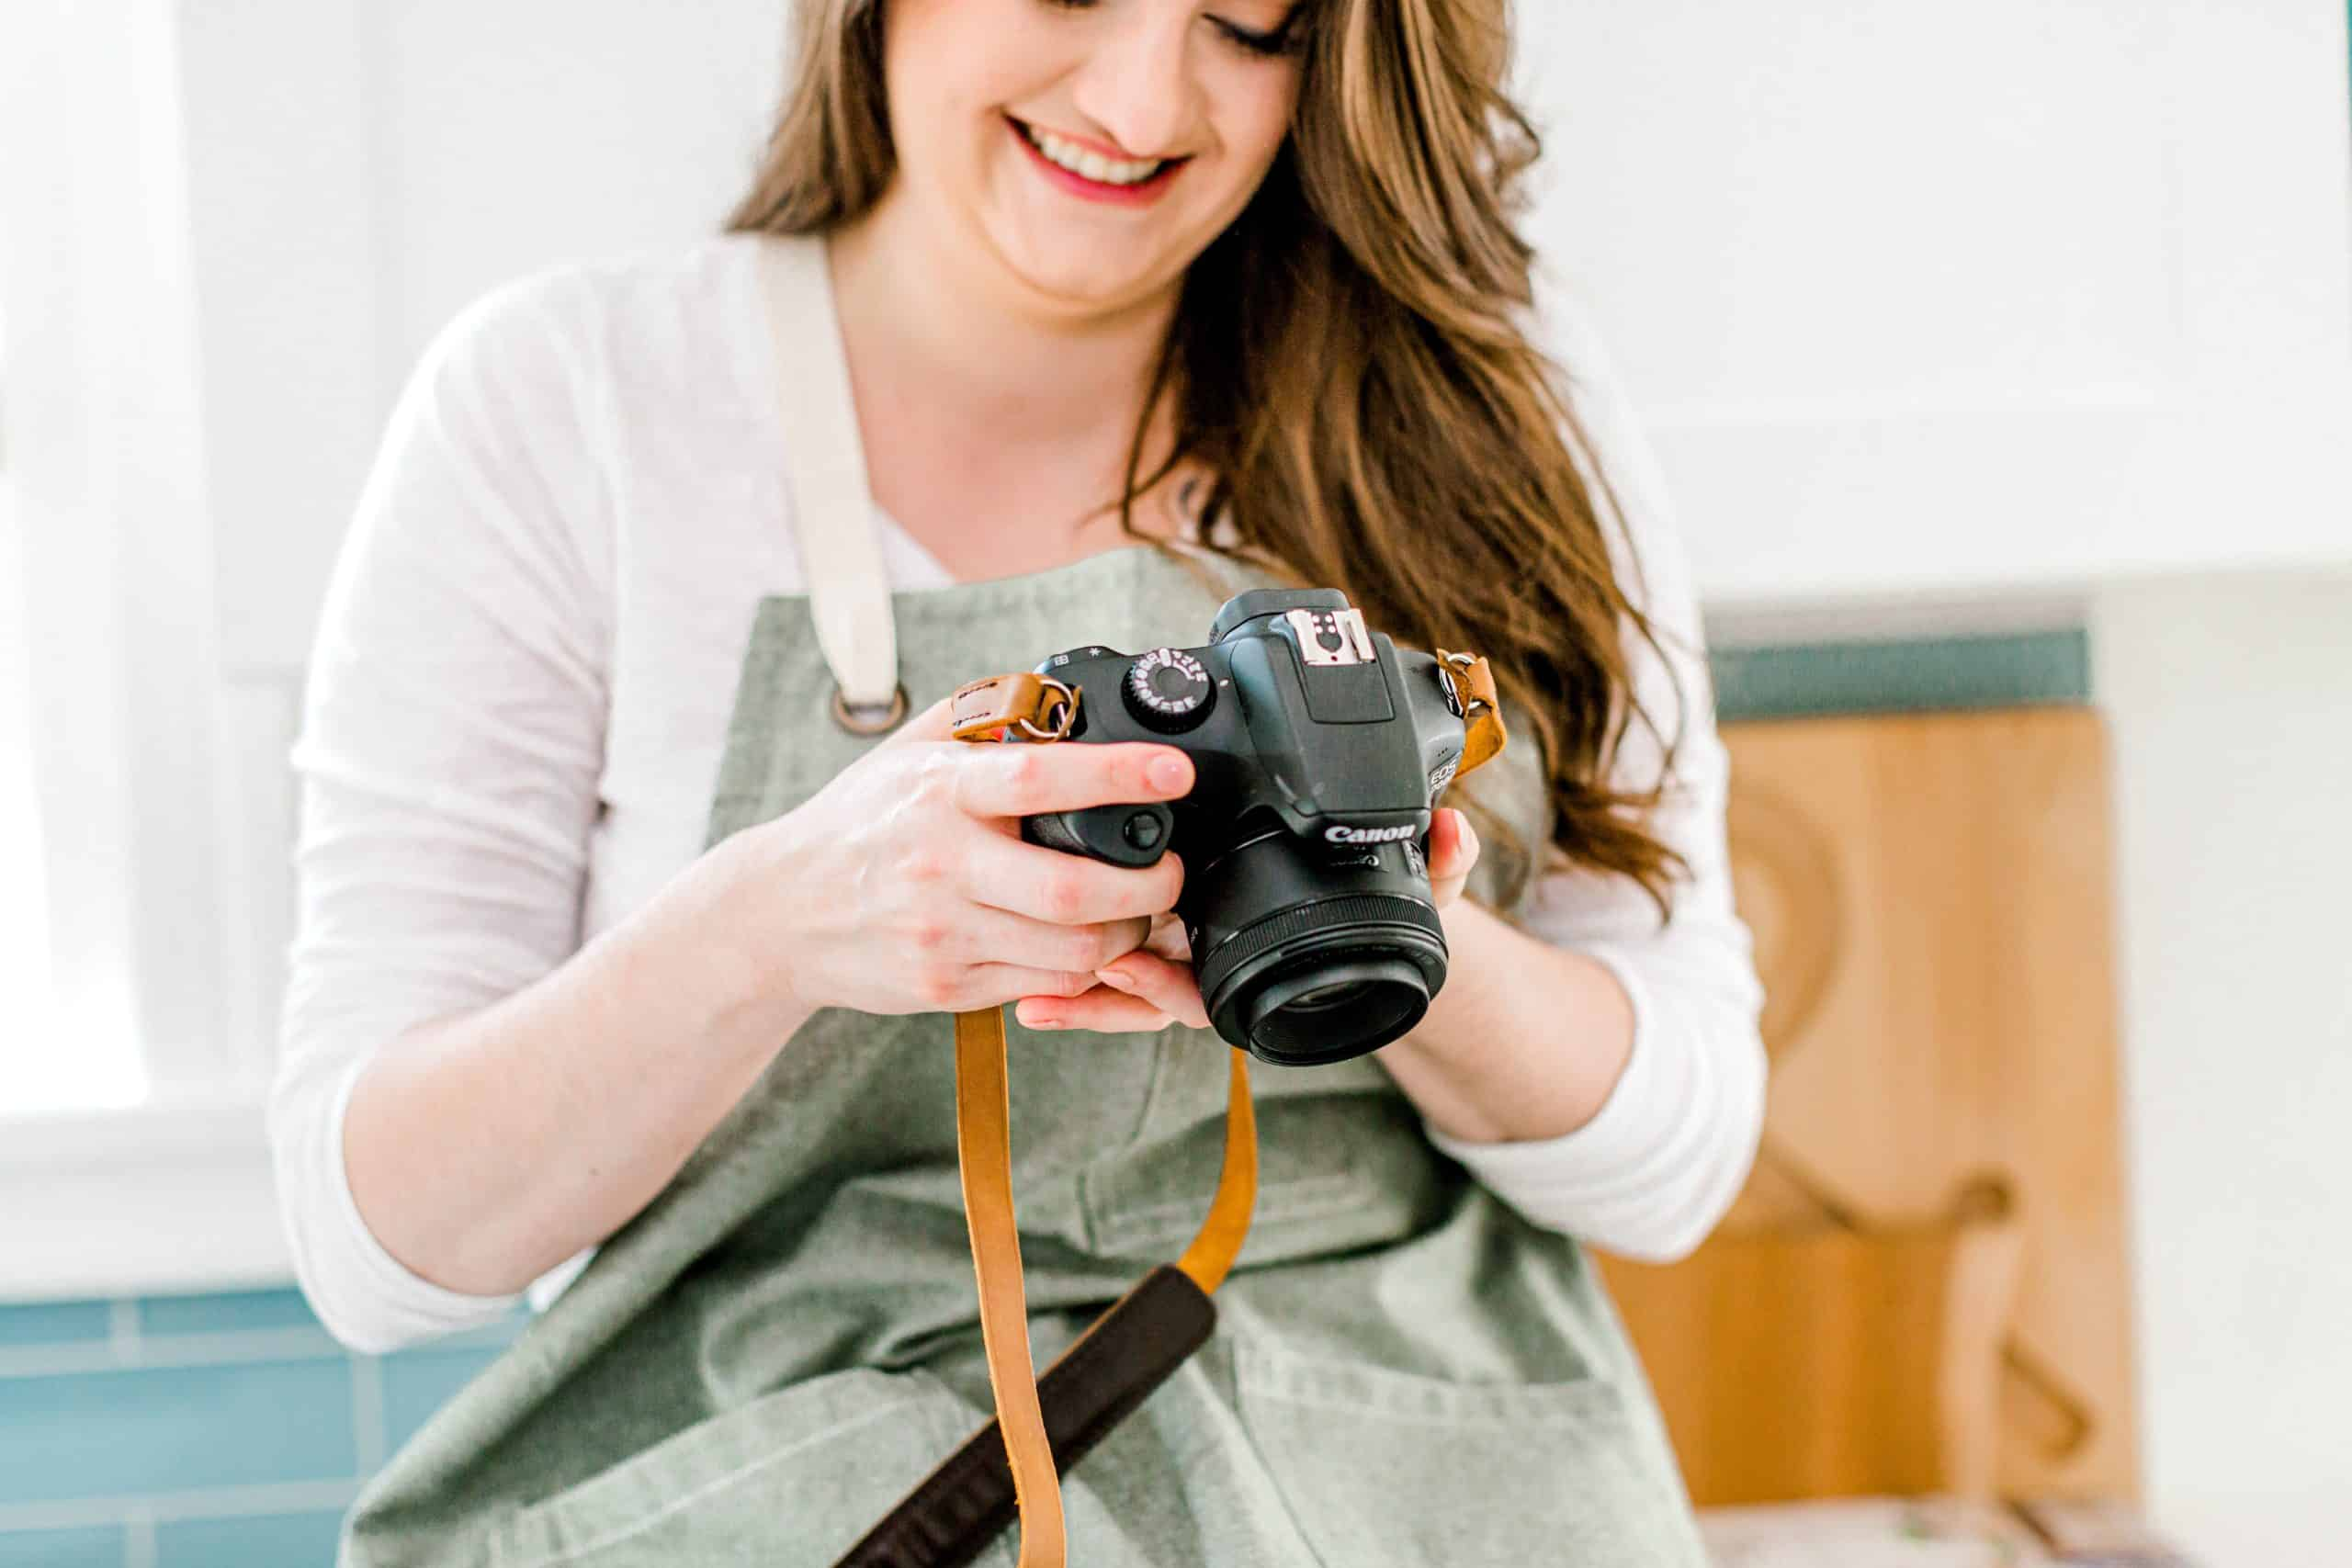 A person holding a camera and smiling